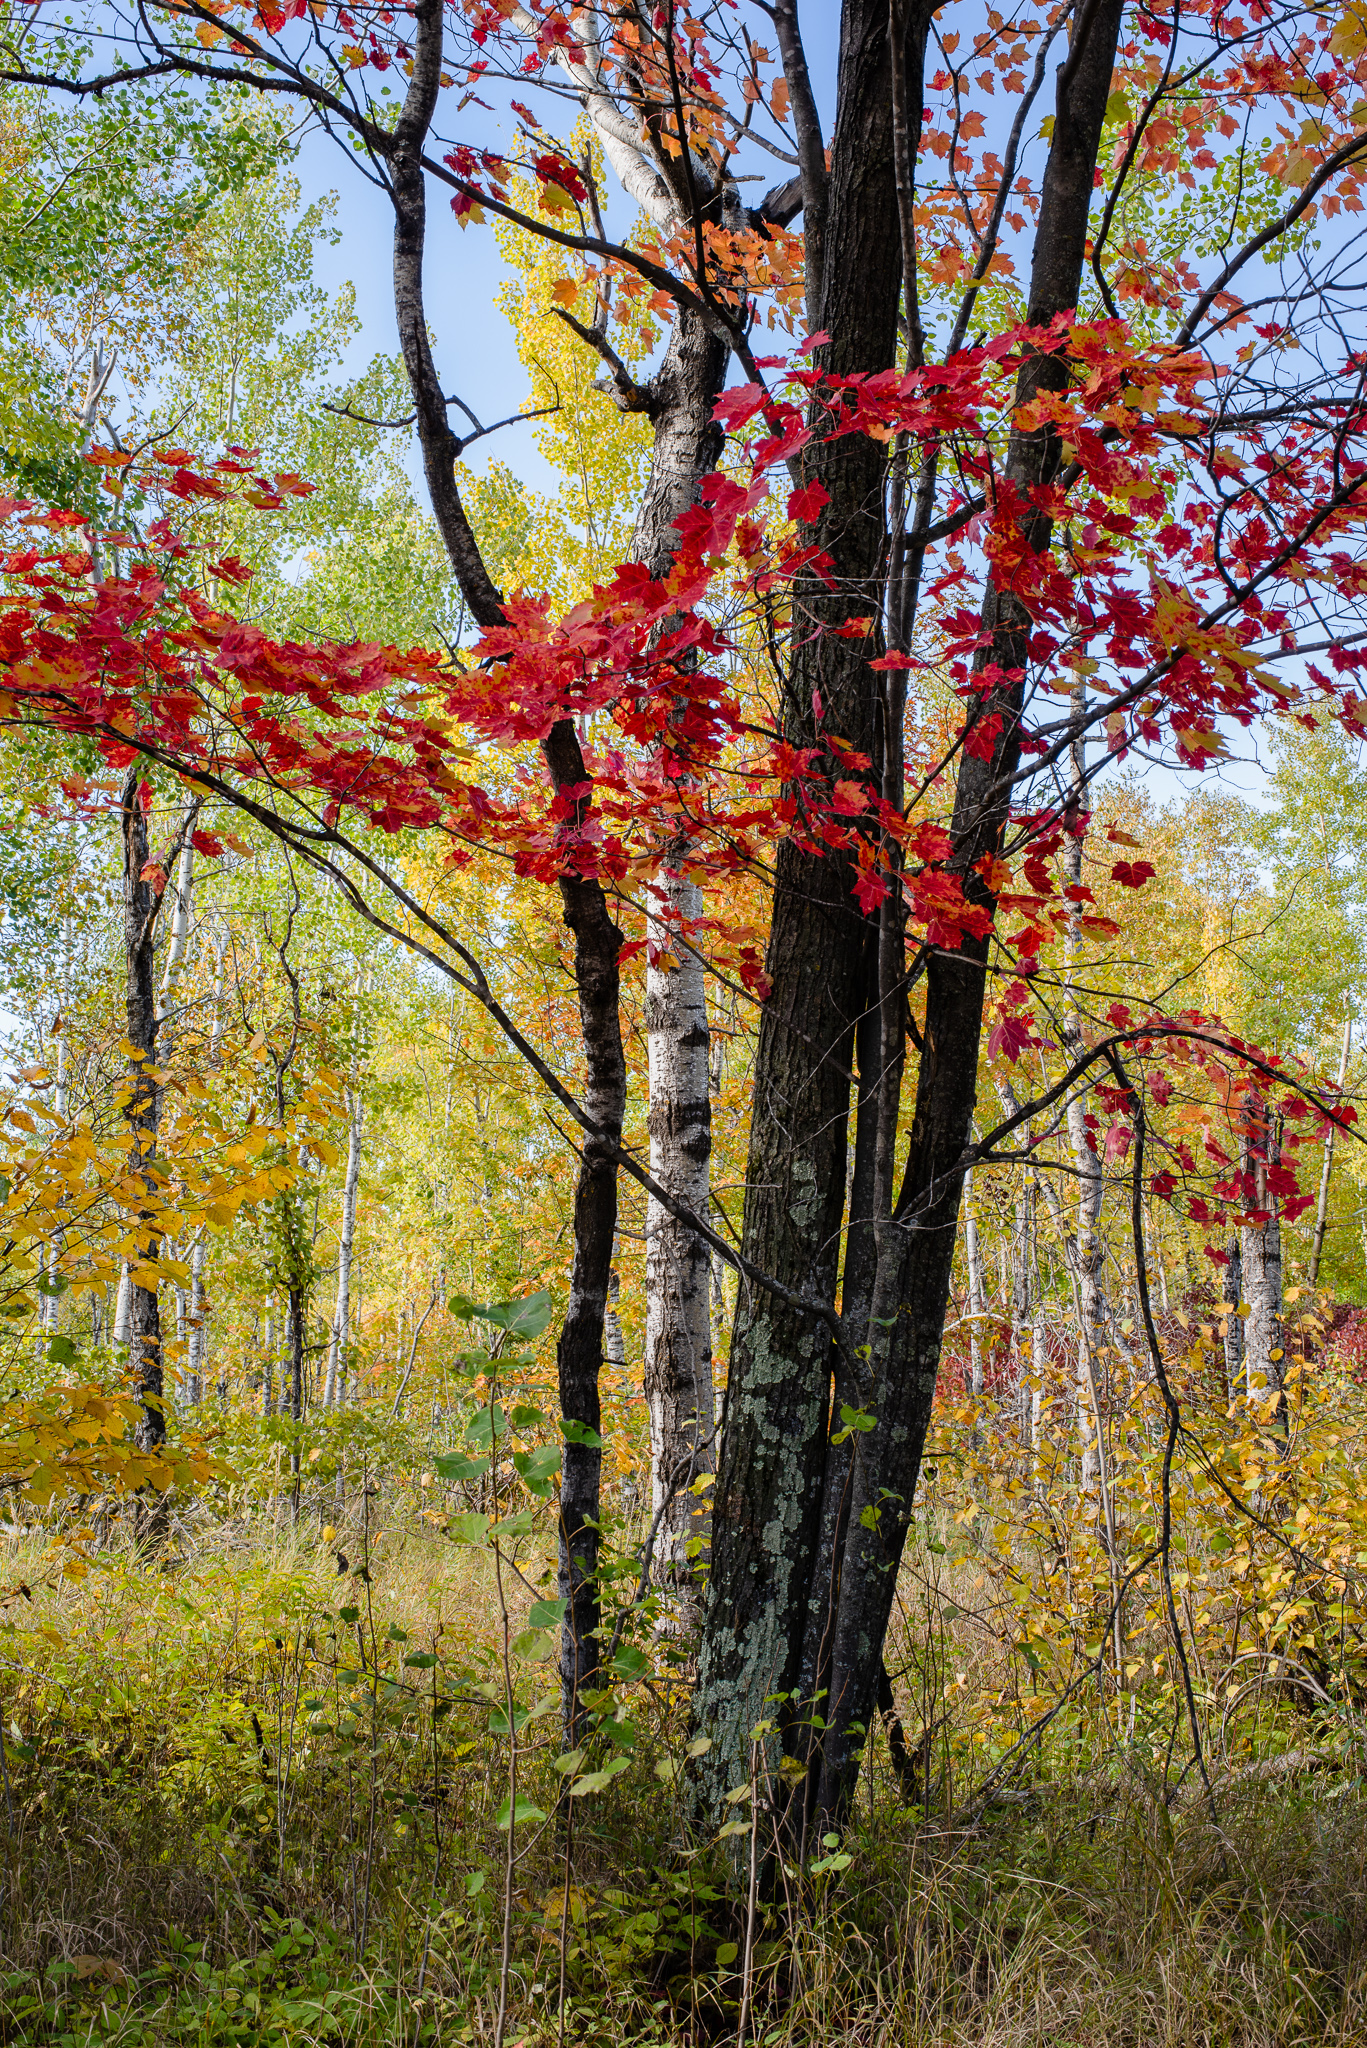 Hawk Ridge Fall Color in Duluth, MN. #hawkridge #fallcolor #maple #red #northwoods